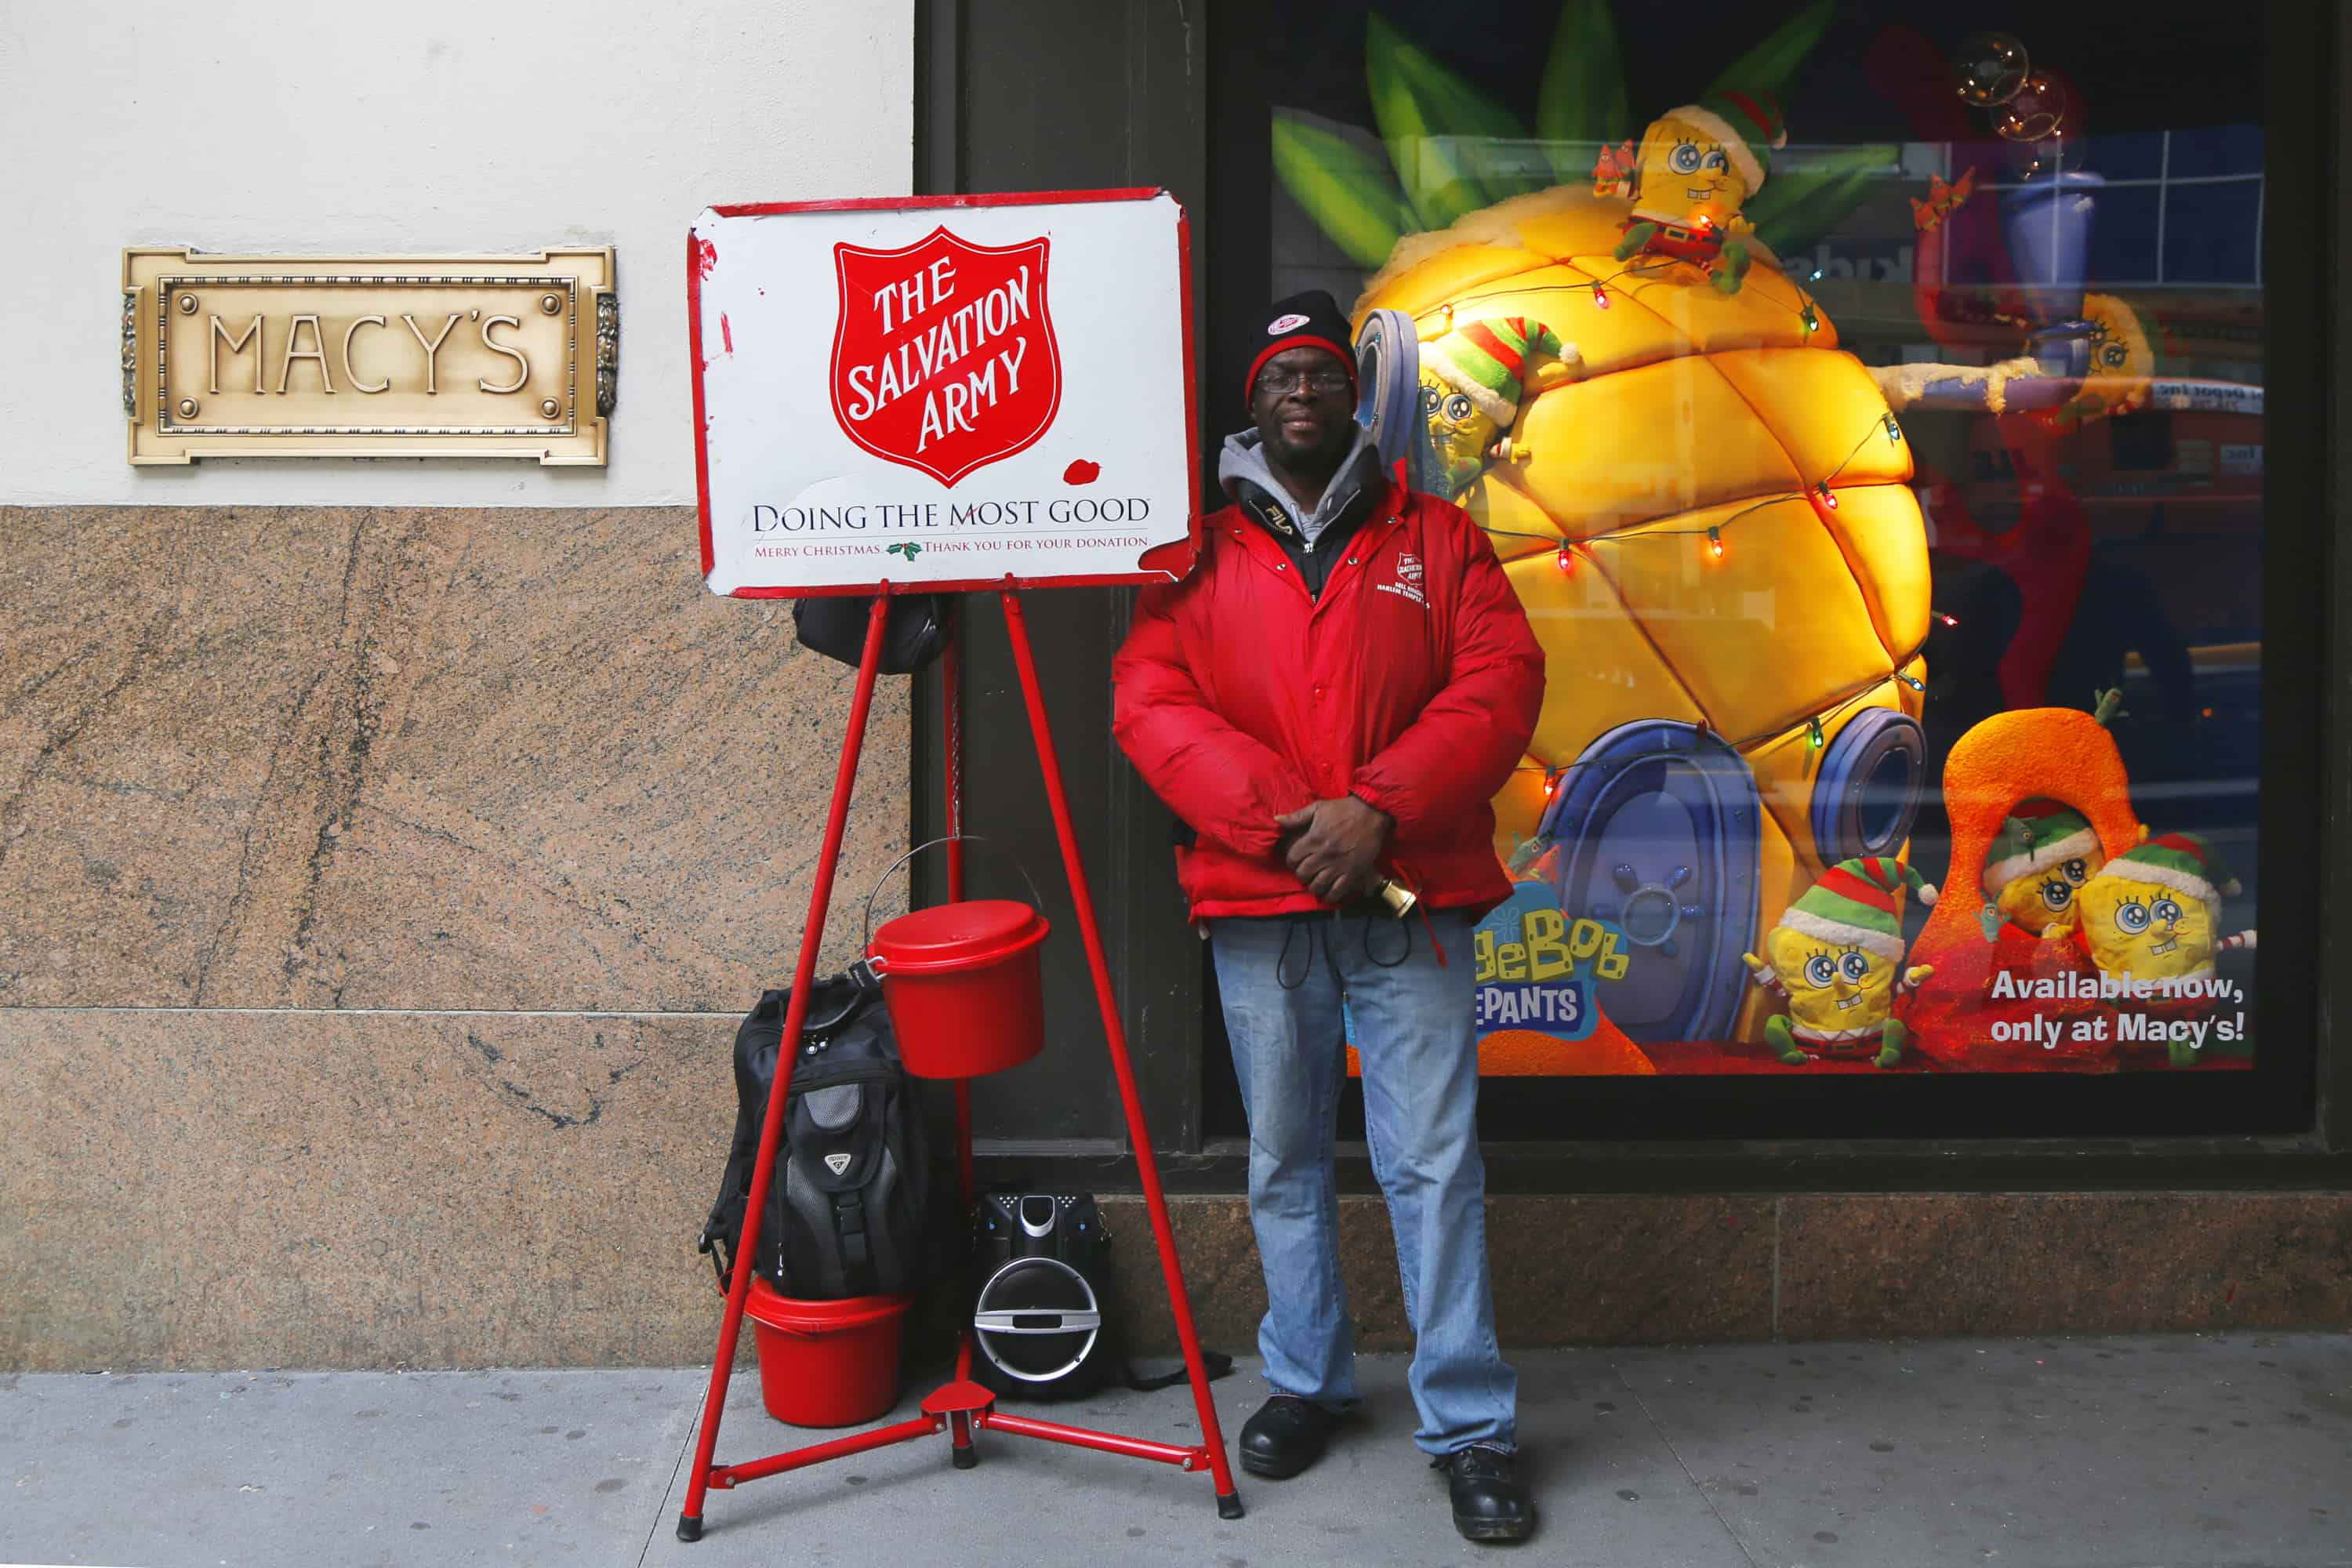 Black male Salvation Army volunteer standing next to the Red Kettle for people to make charitable donations for tax deductions.